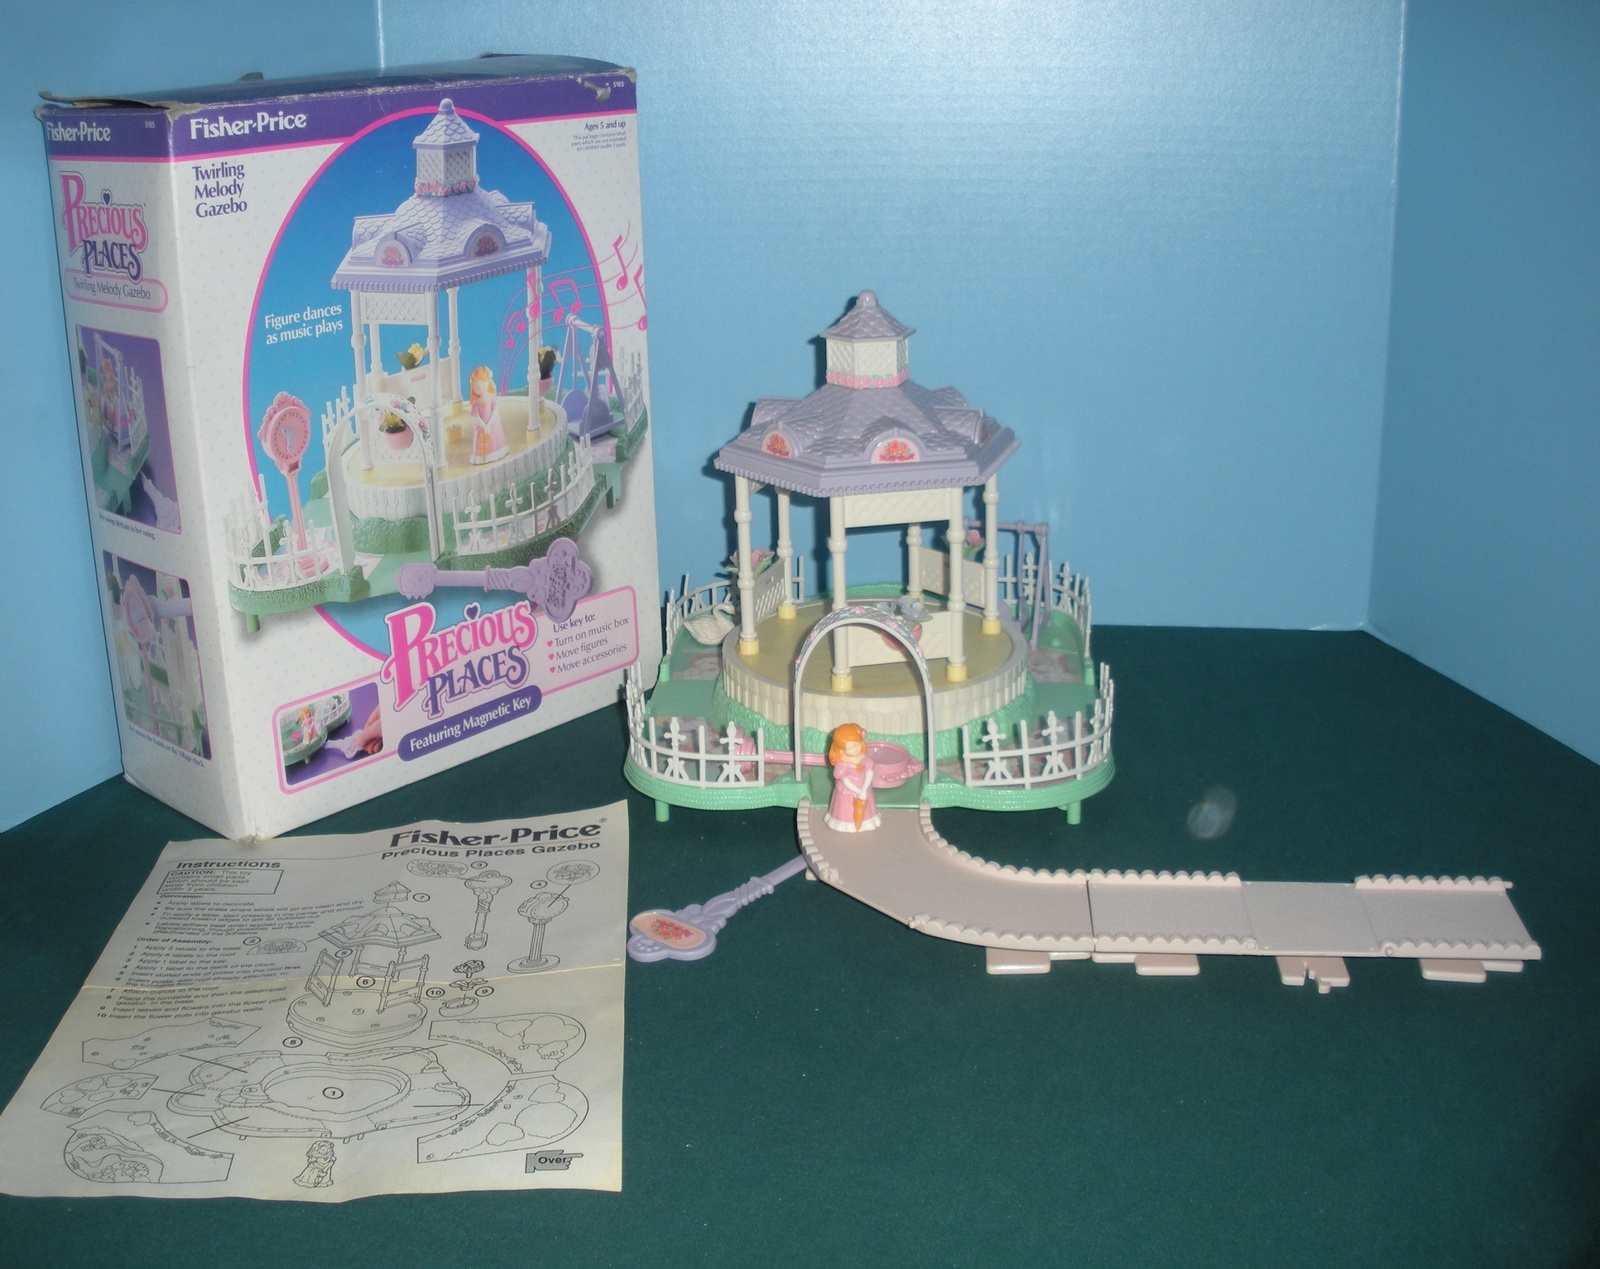 Primary image for Vtg. Fisher Price Precious Places #5165 Twirling Melody Gazebo Comp. w/Box/NR MT